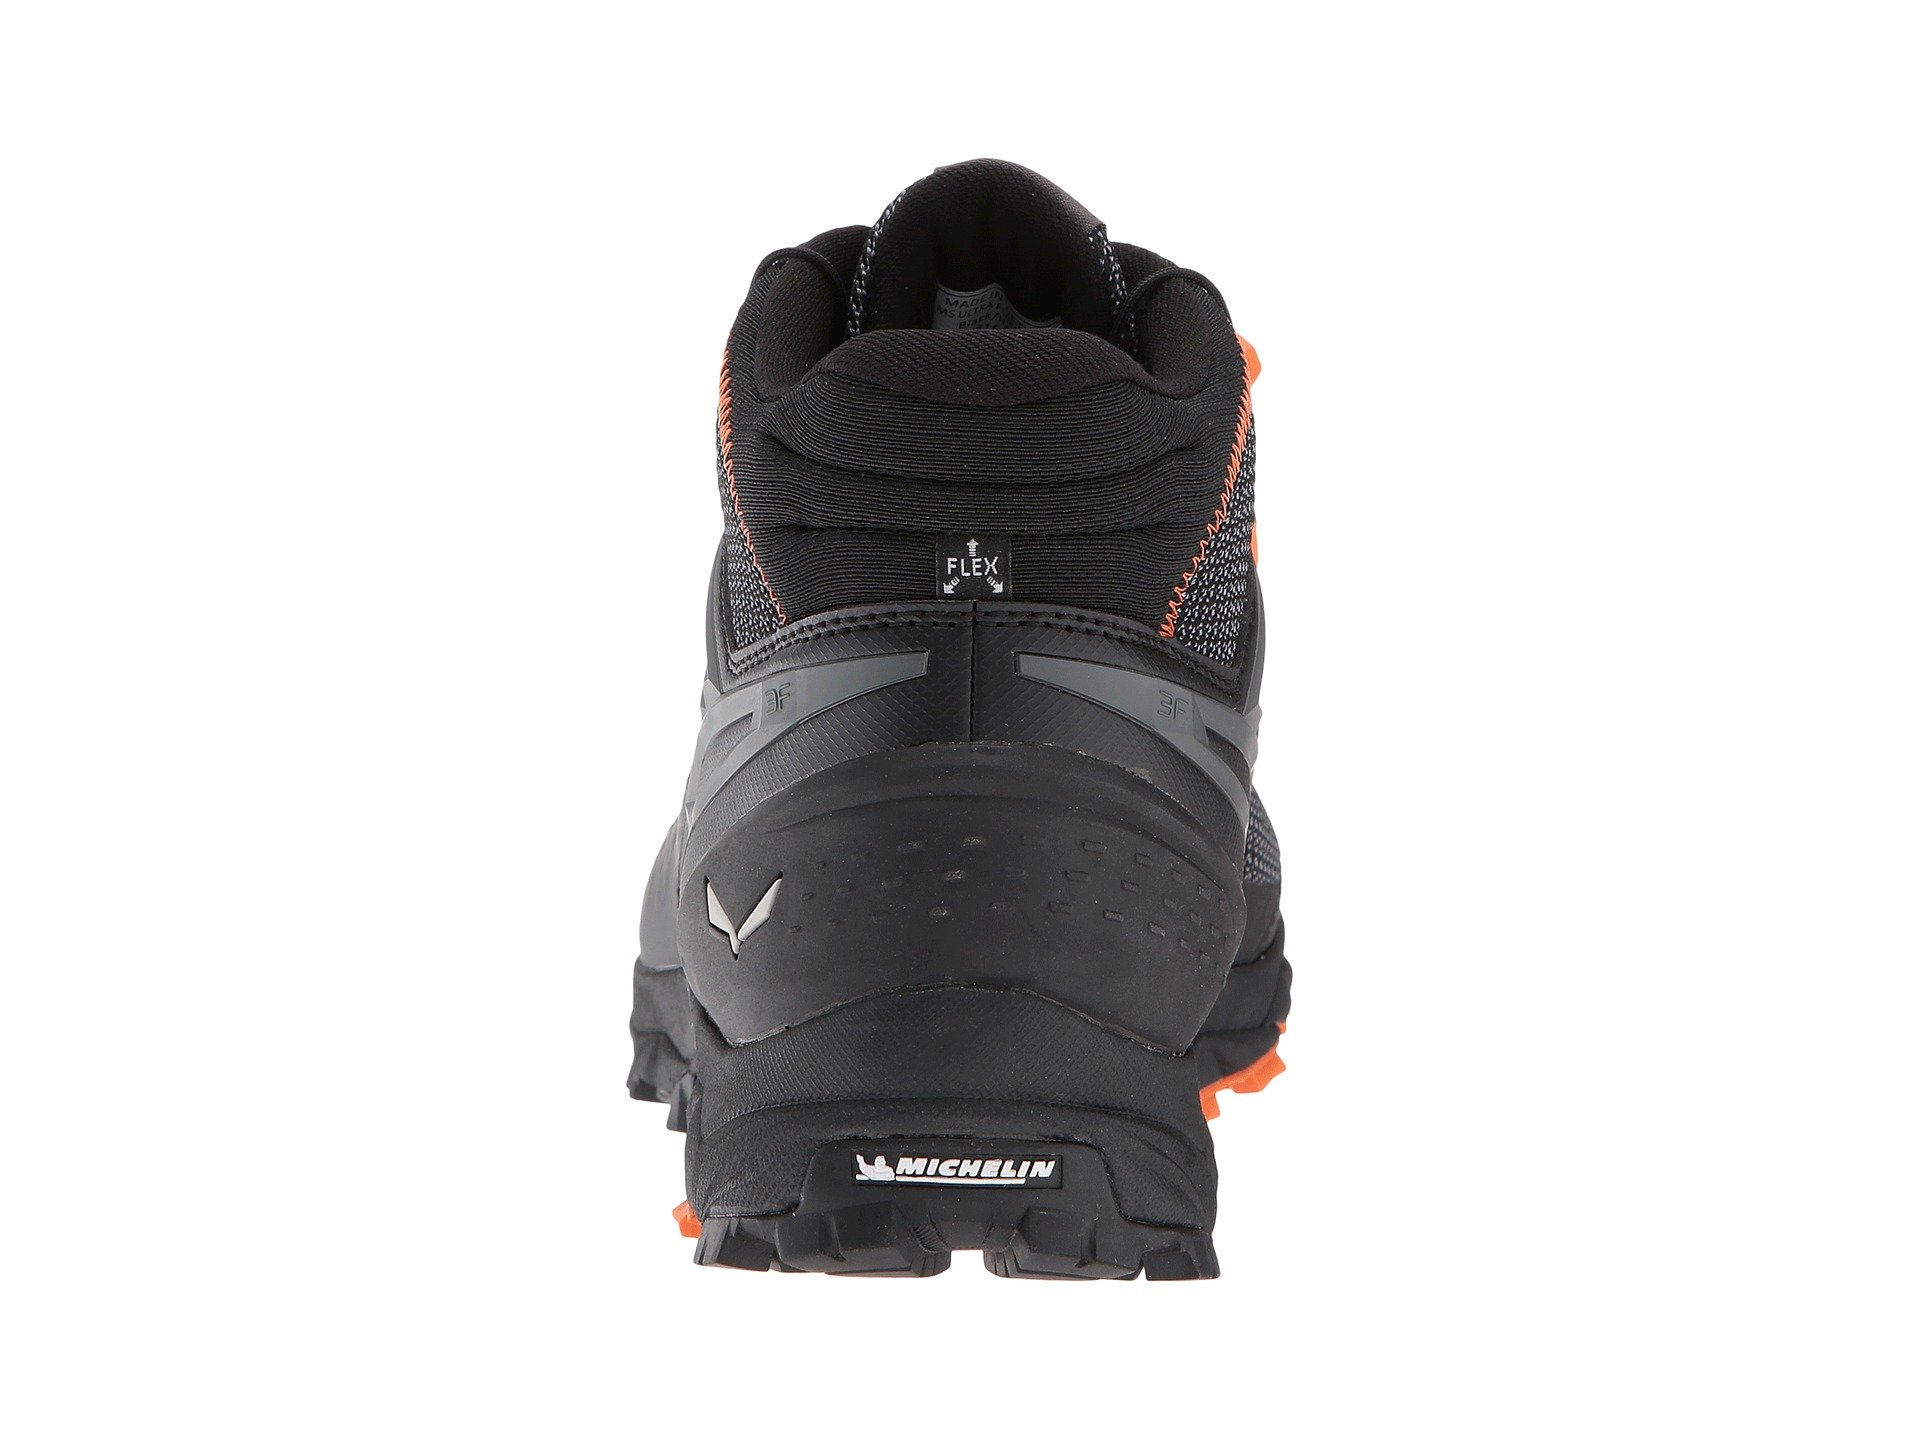 holland Black Salewa Flex Mid Ultra Gtx YFXq8wxO